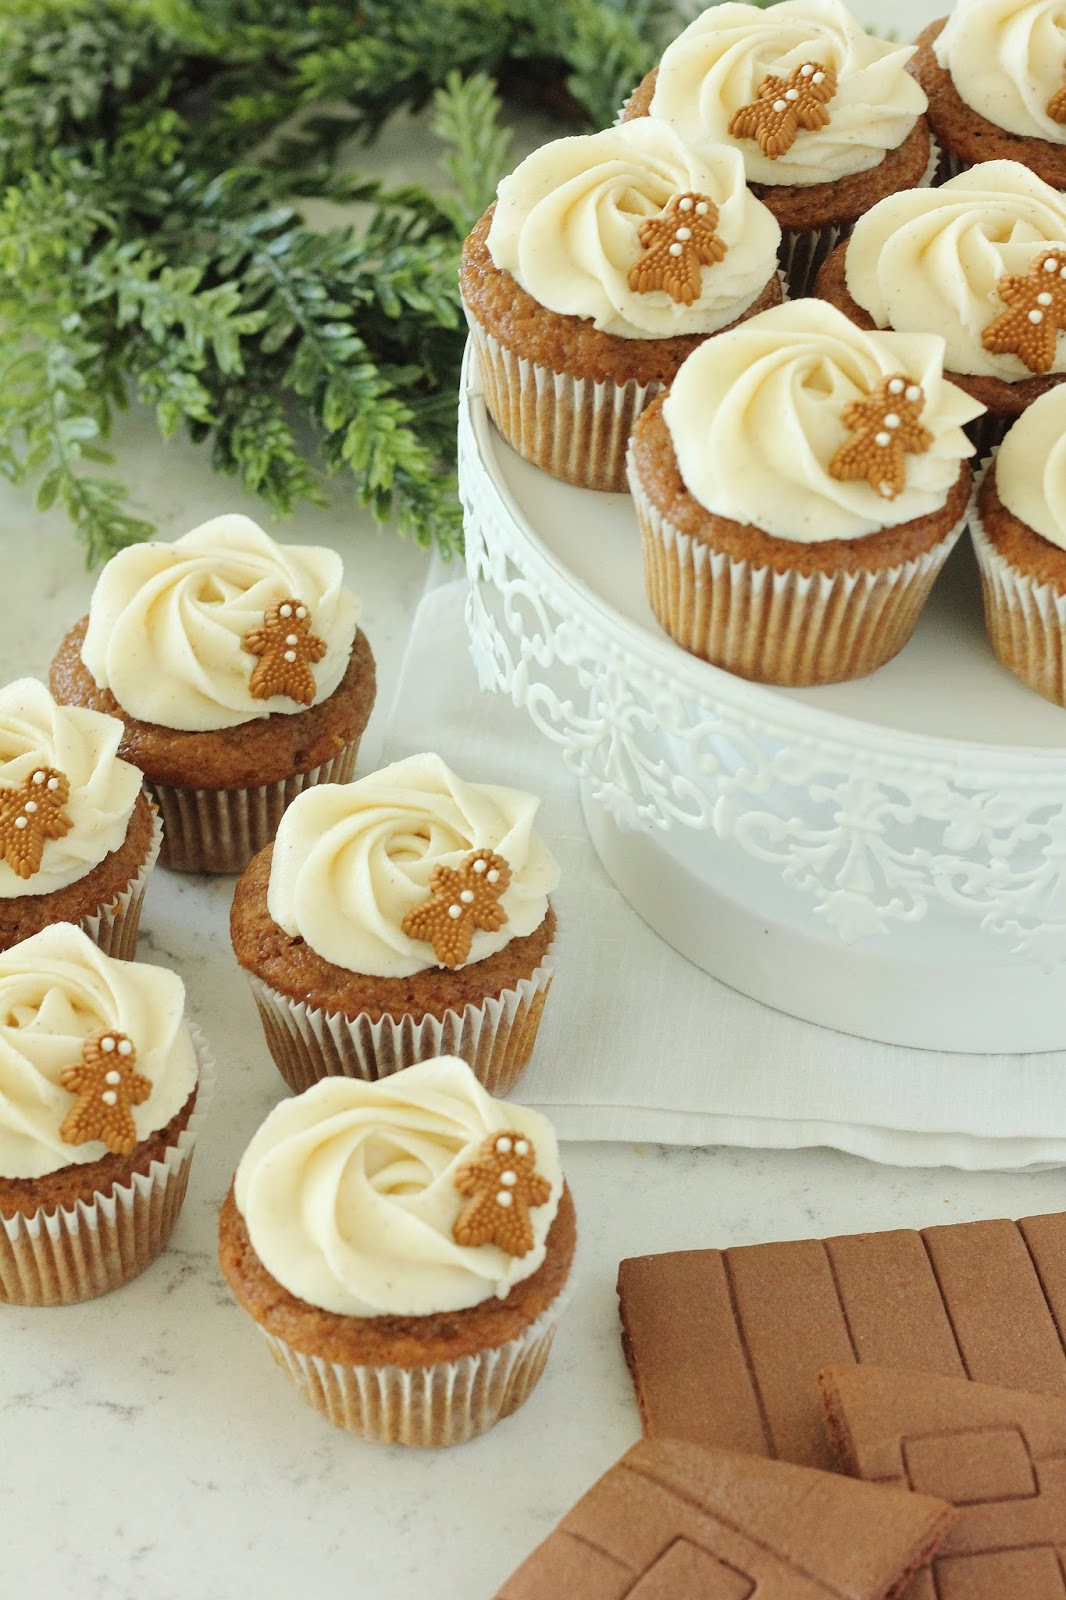 Gingerbread Cupcakes With Spiced Almond Cream Cheese Frosting